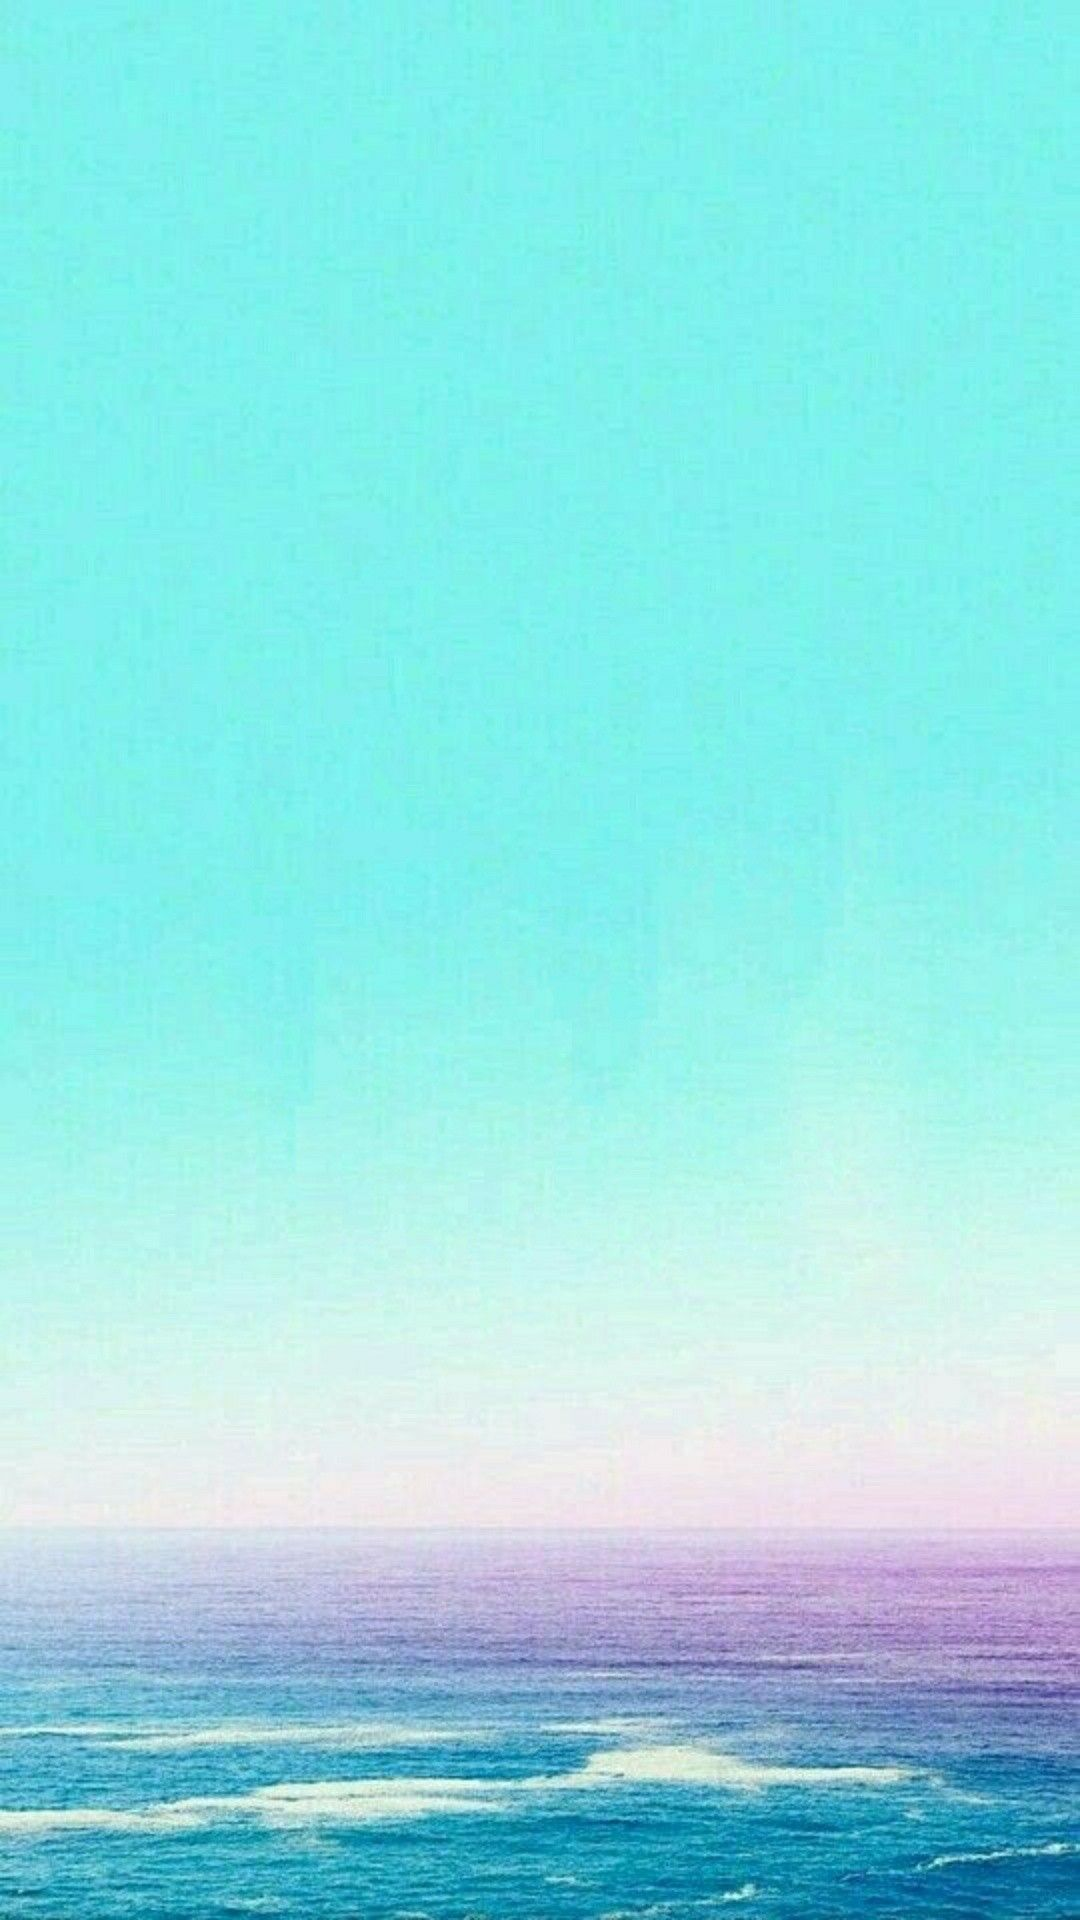 Minimal Iphone Iphonewallpaper Wallpaper Purple Cute Disney Blue Babyblie Skyblue Purple B Bright Wallpaper Summer Wallpaper Wallpaper Iphone Summer